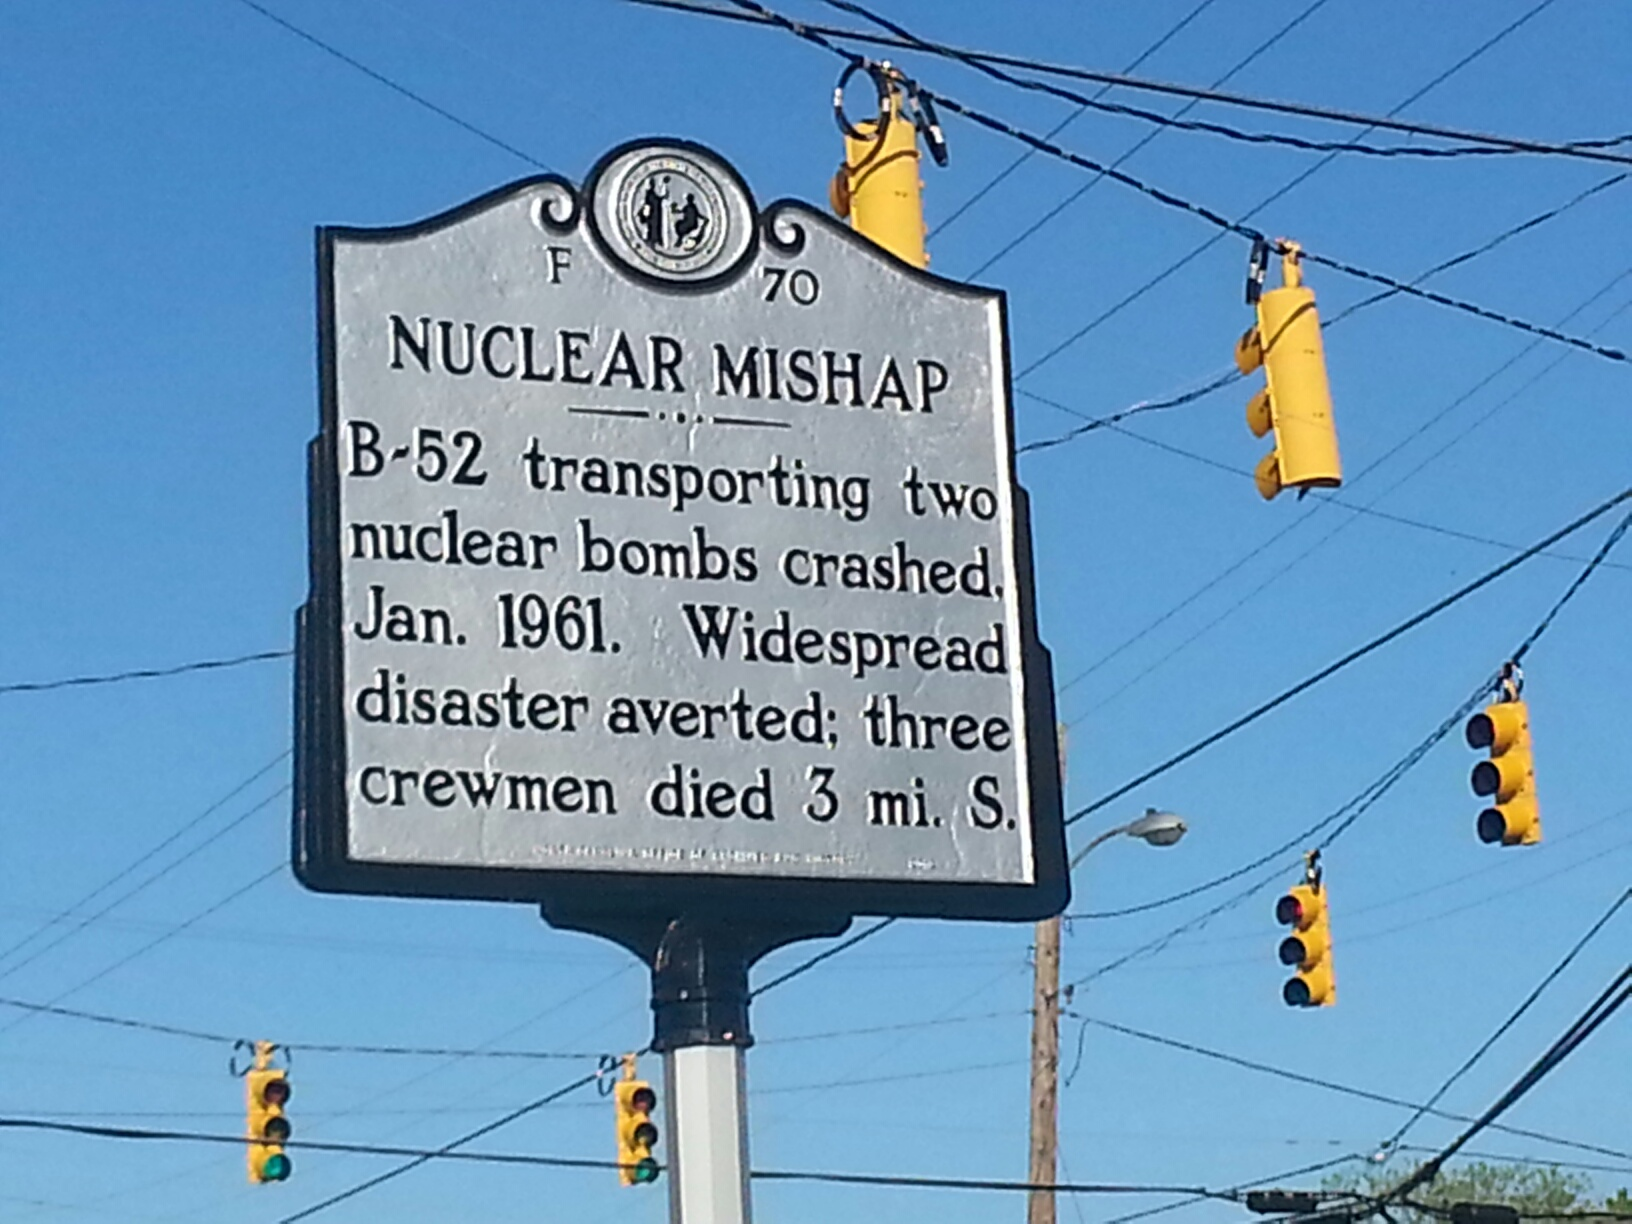 The historic marker is located in the center of town where more people might read it. The crash site is located three miles north of the sign.